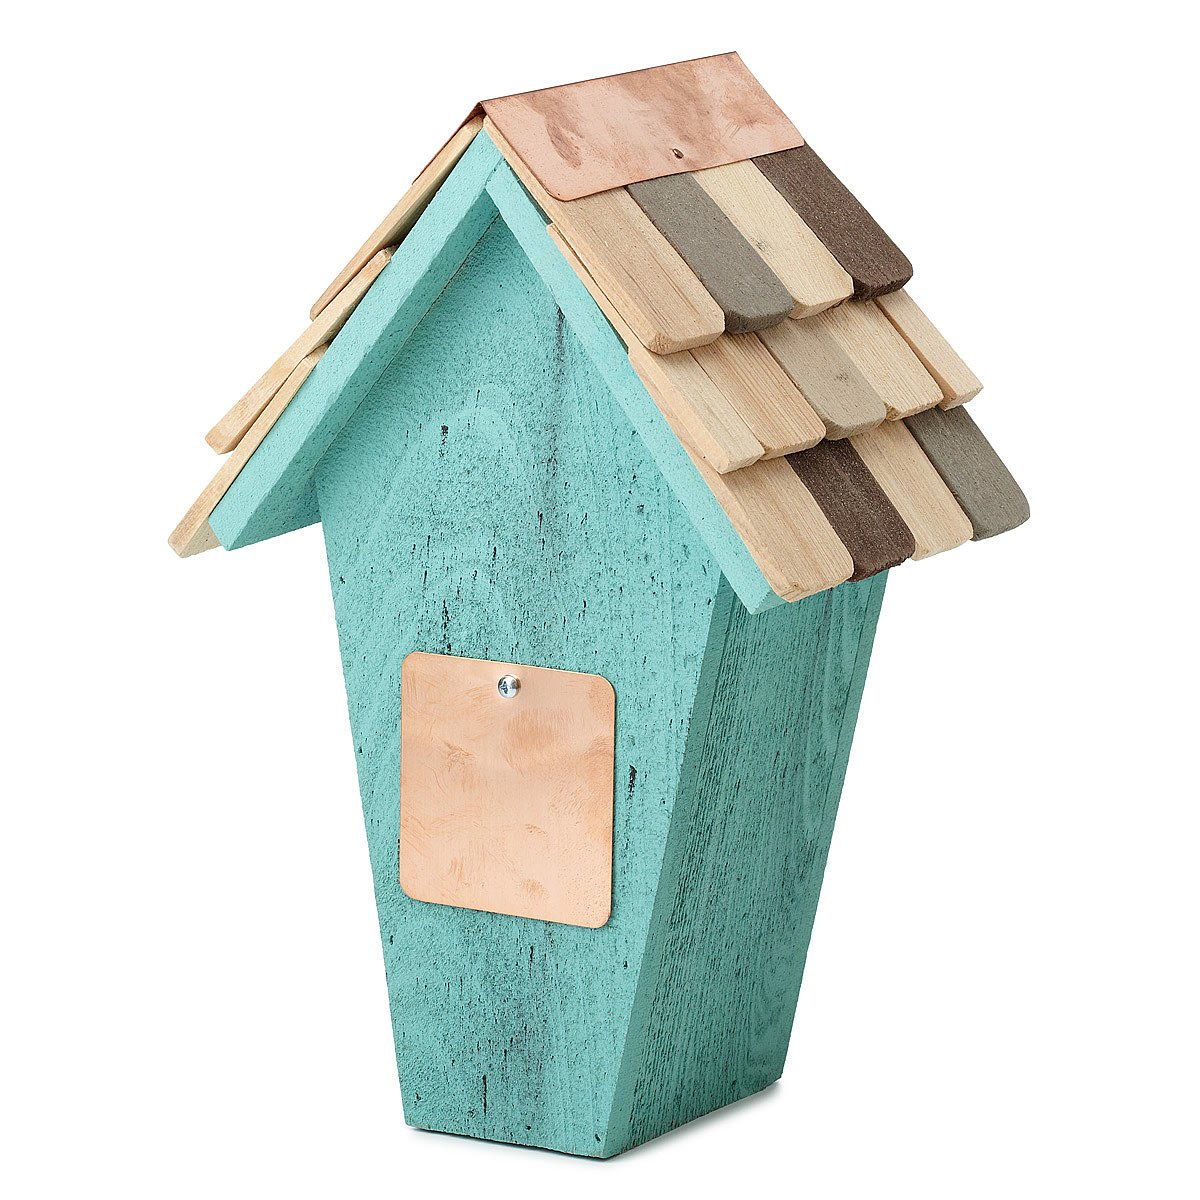 Butterfly lawn ornaments - Wooden Butterfly House 2 Thumbnail